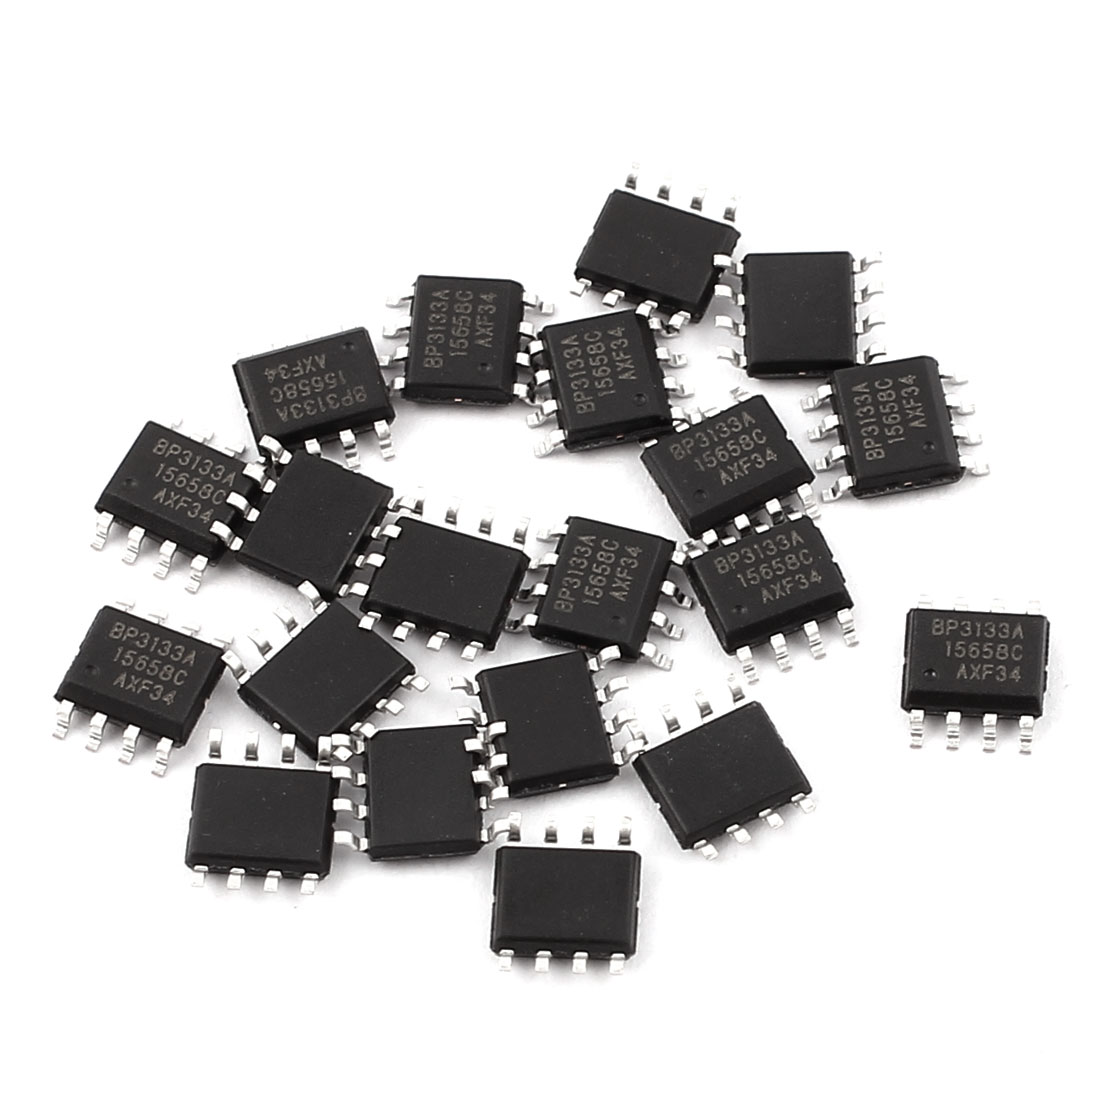 20Pcs BP3133A SOP-8 SMD SMT Type PCB Surface Mount LED Driver Circuit Module Integrated Circuit IC Chip